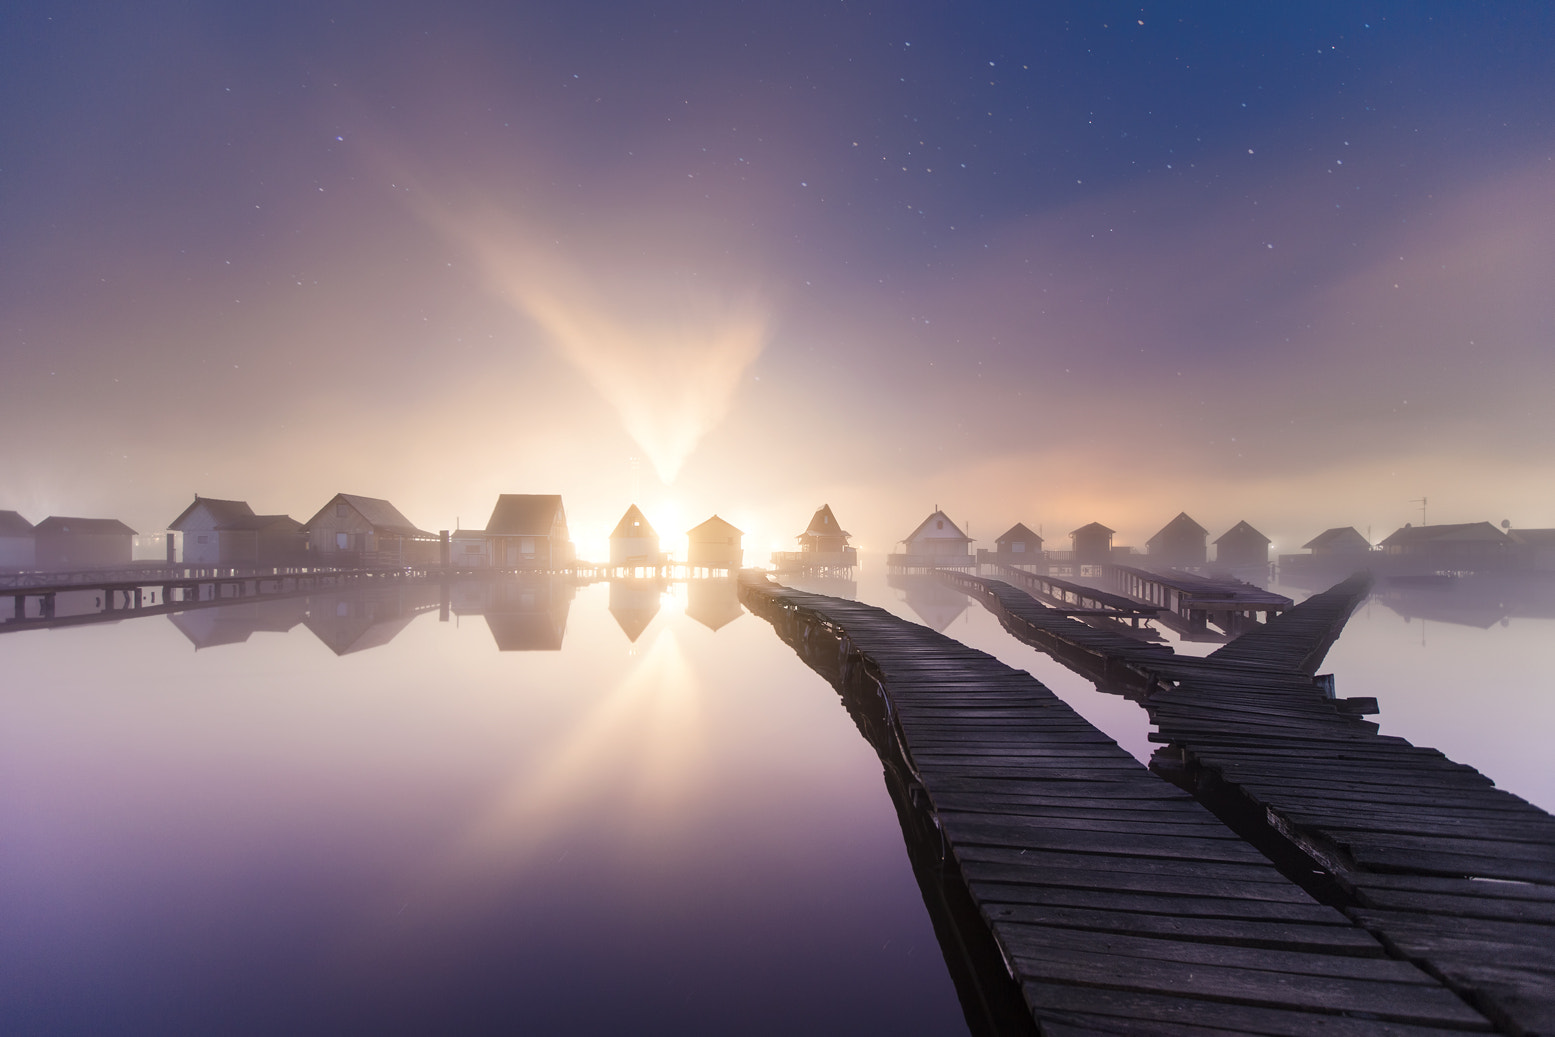 Photograph In The Morning Mist  by Lucas Portee on 500px